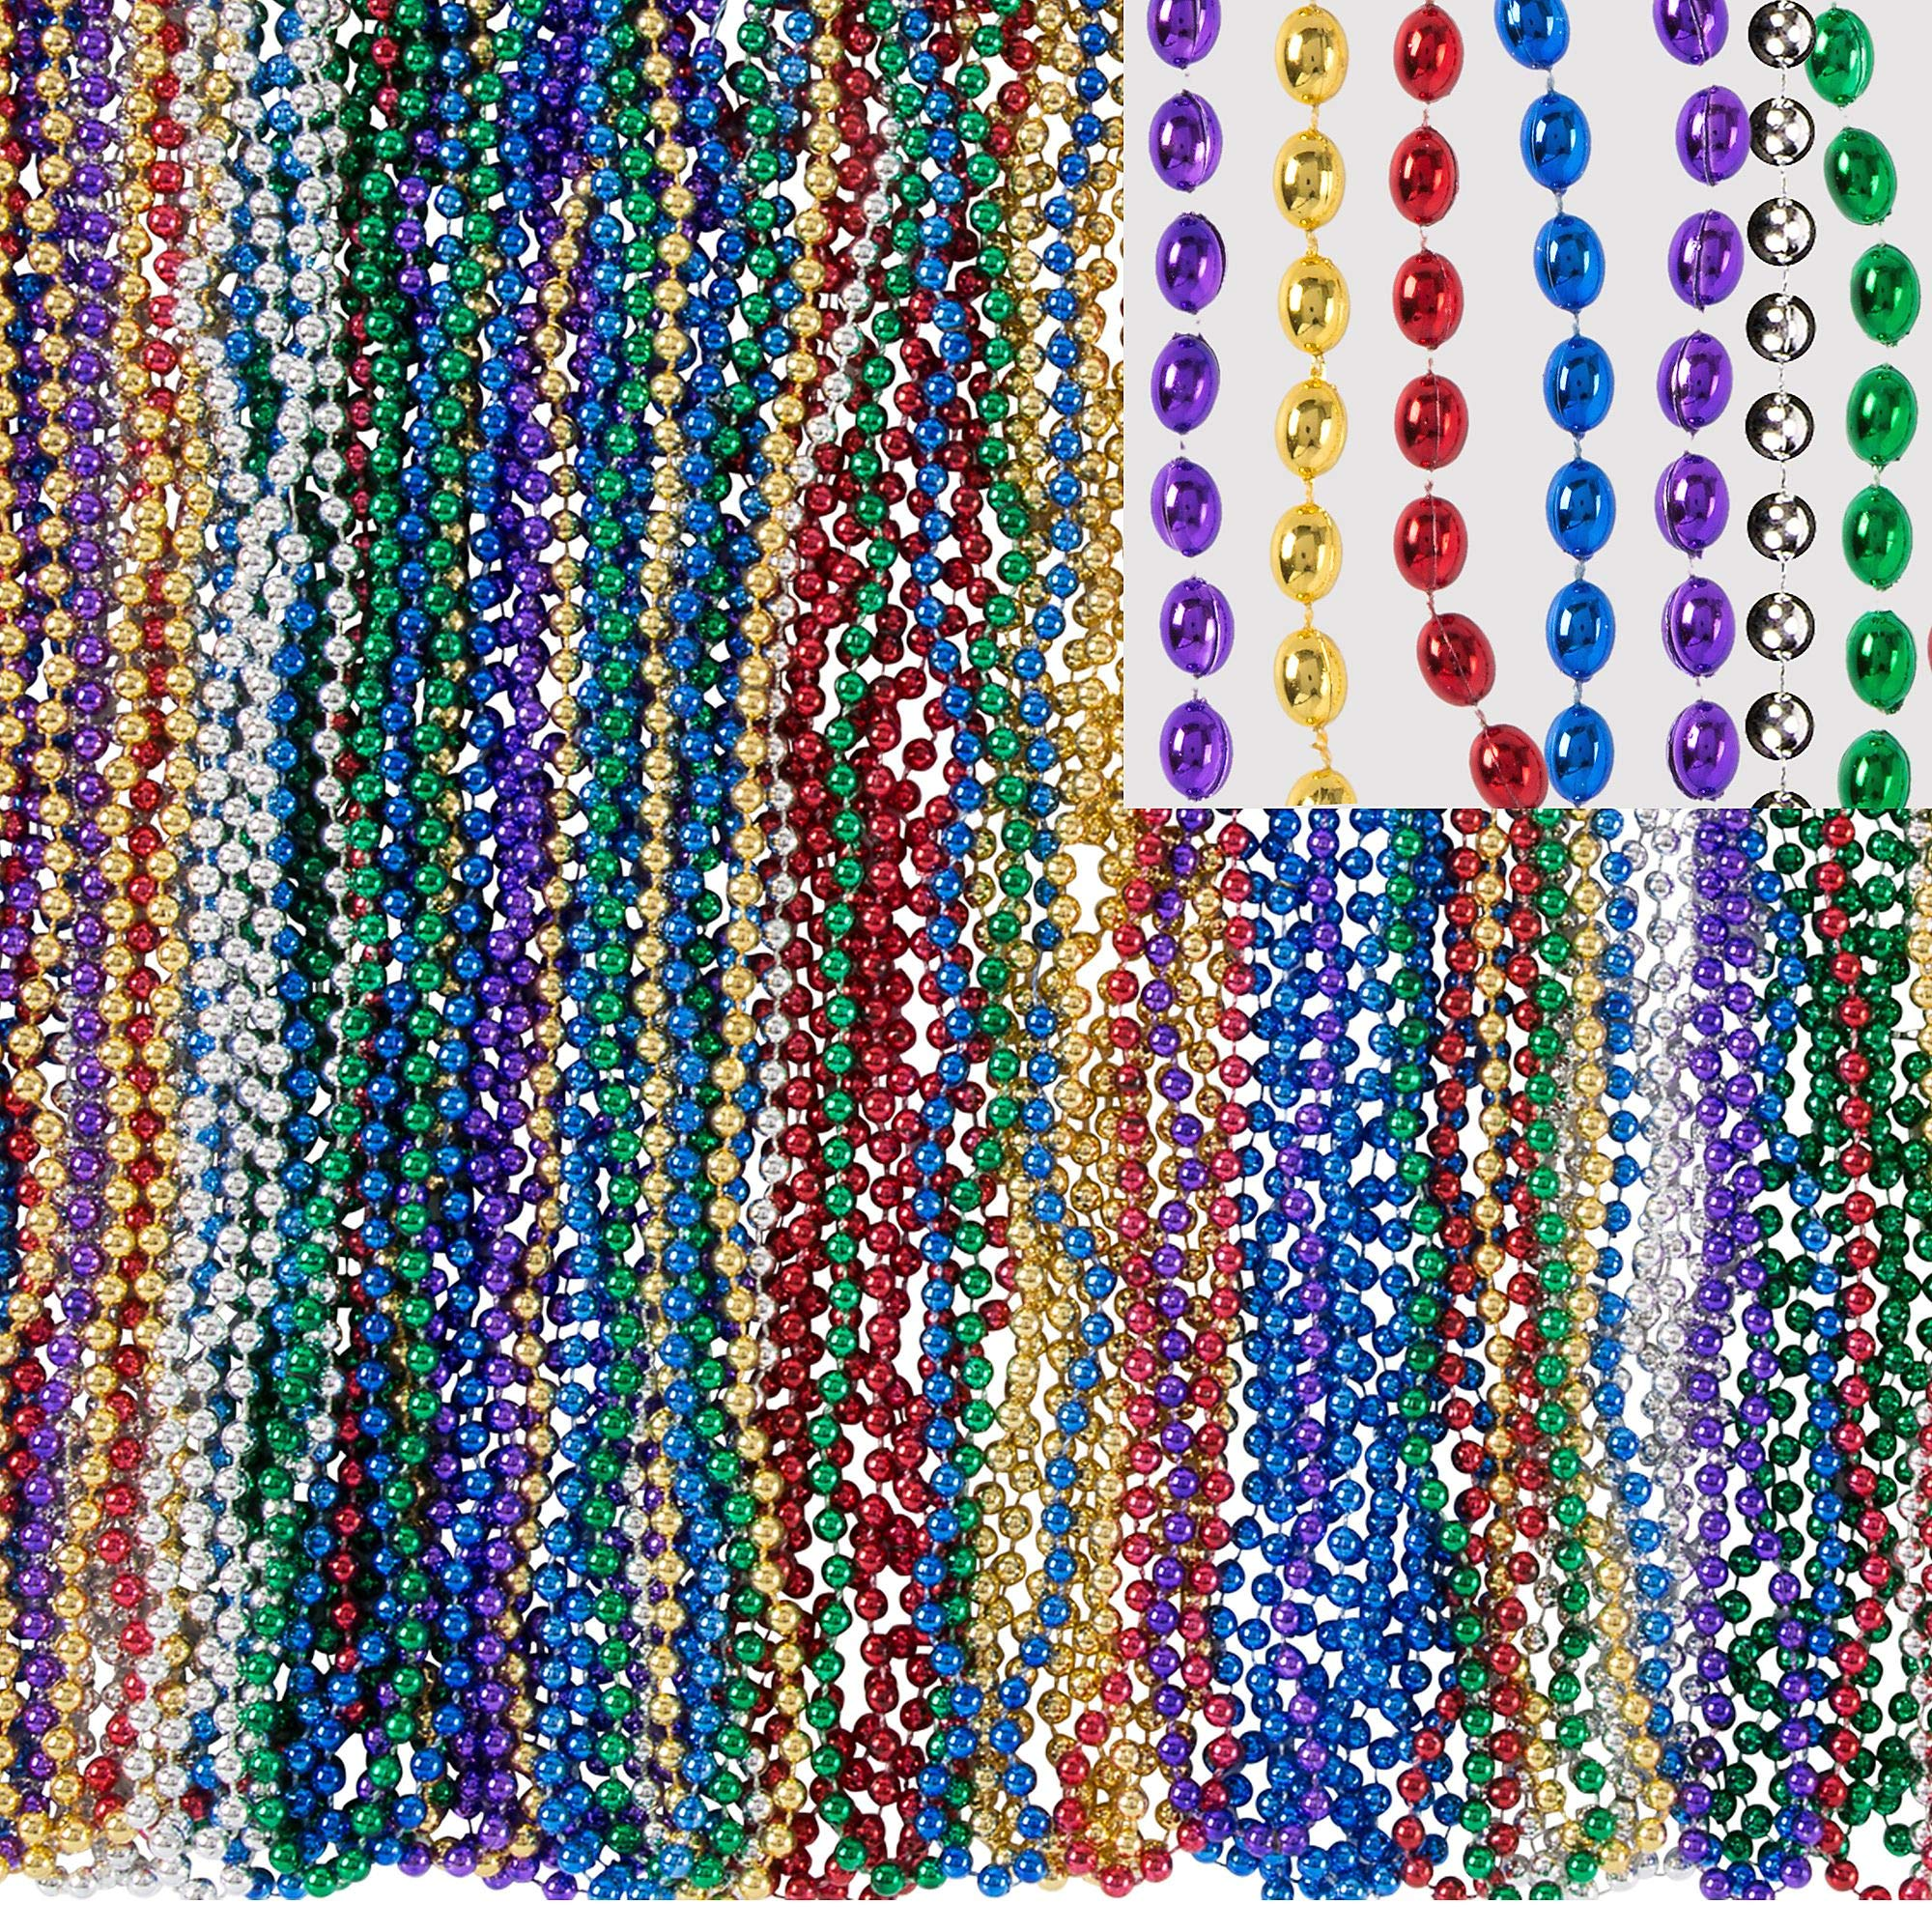 Amscan Mardi Gras Bead Necklaces, Carnival Party Supplies, 6 Assorted Colors, 30'' L, 720 Count by amscan